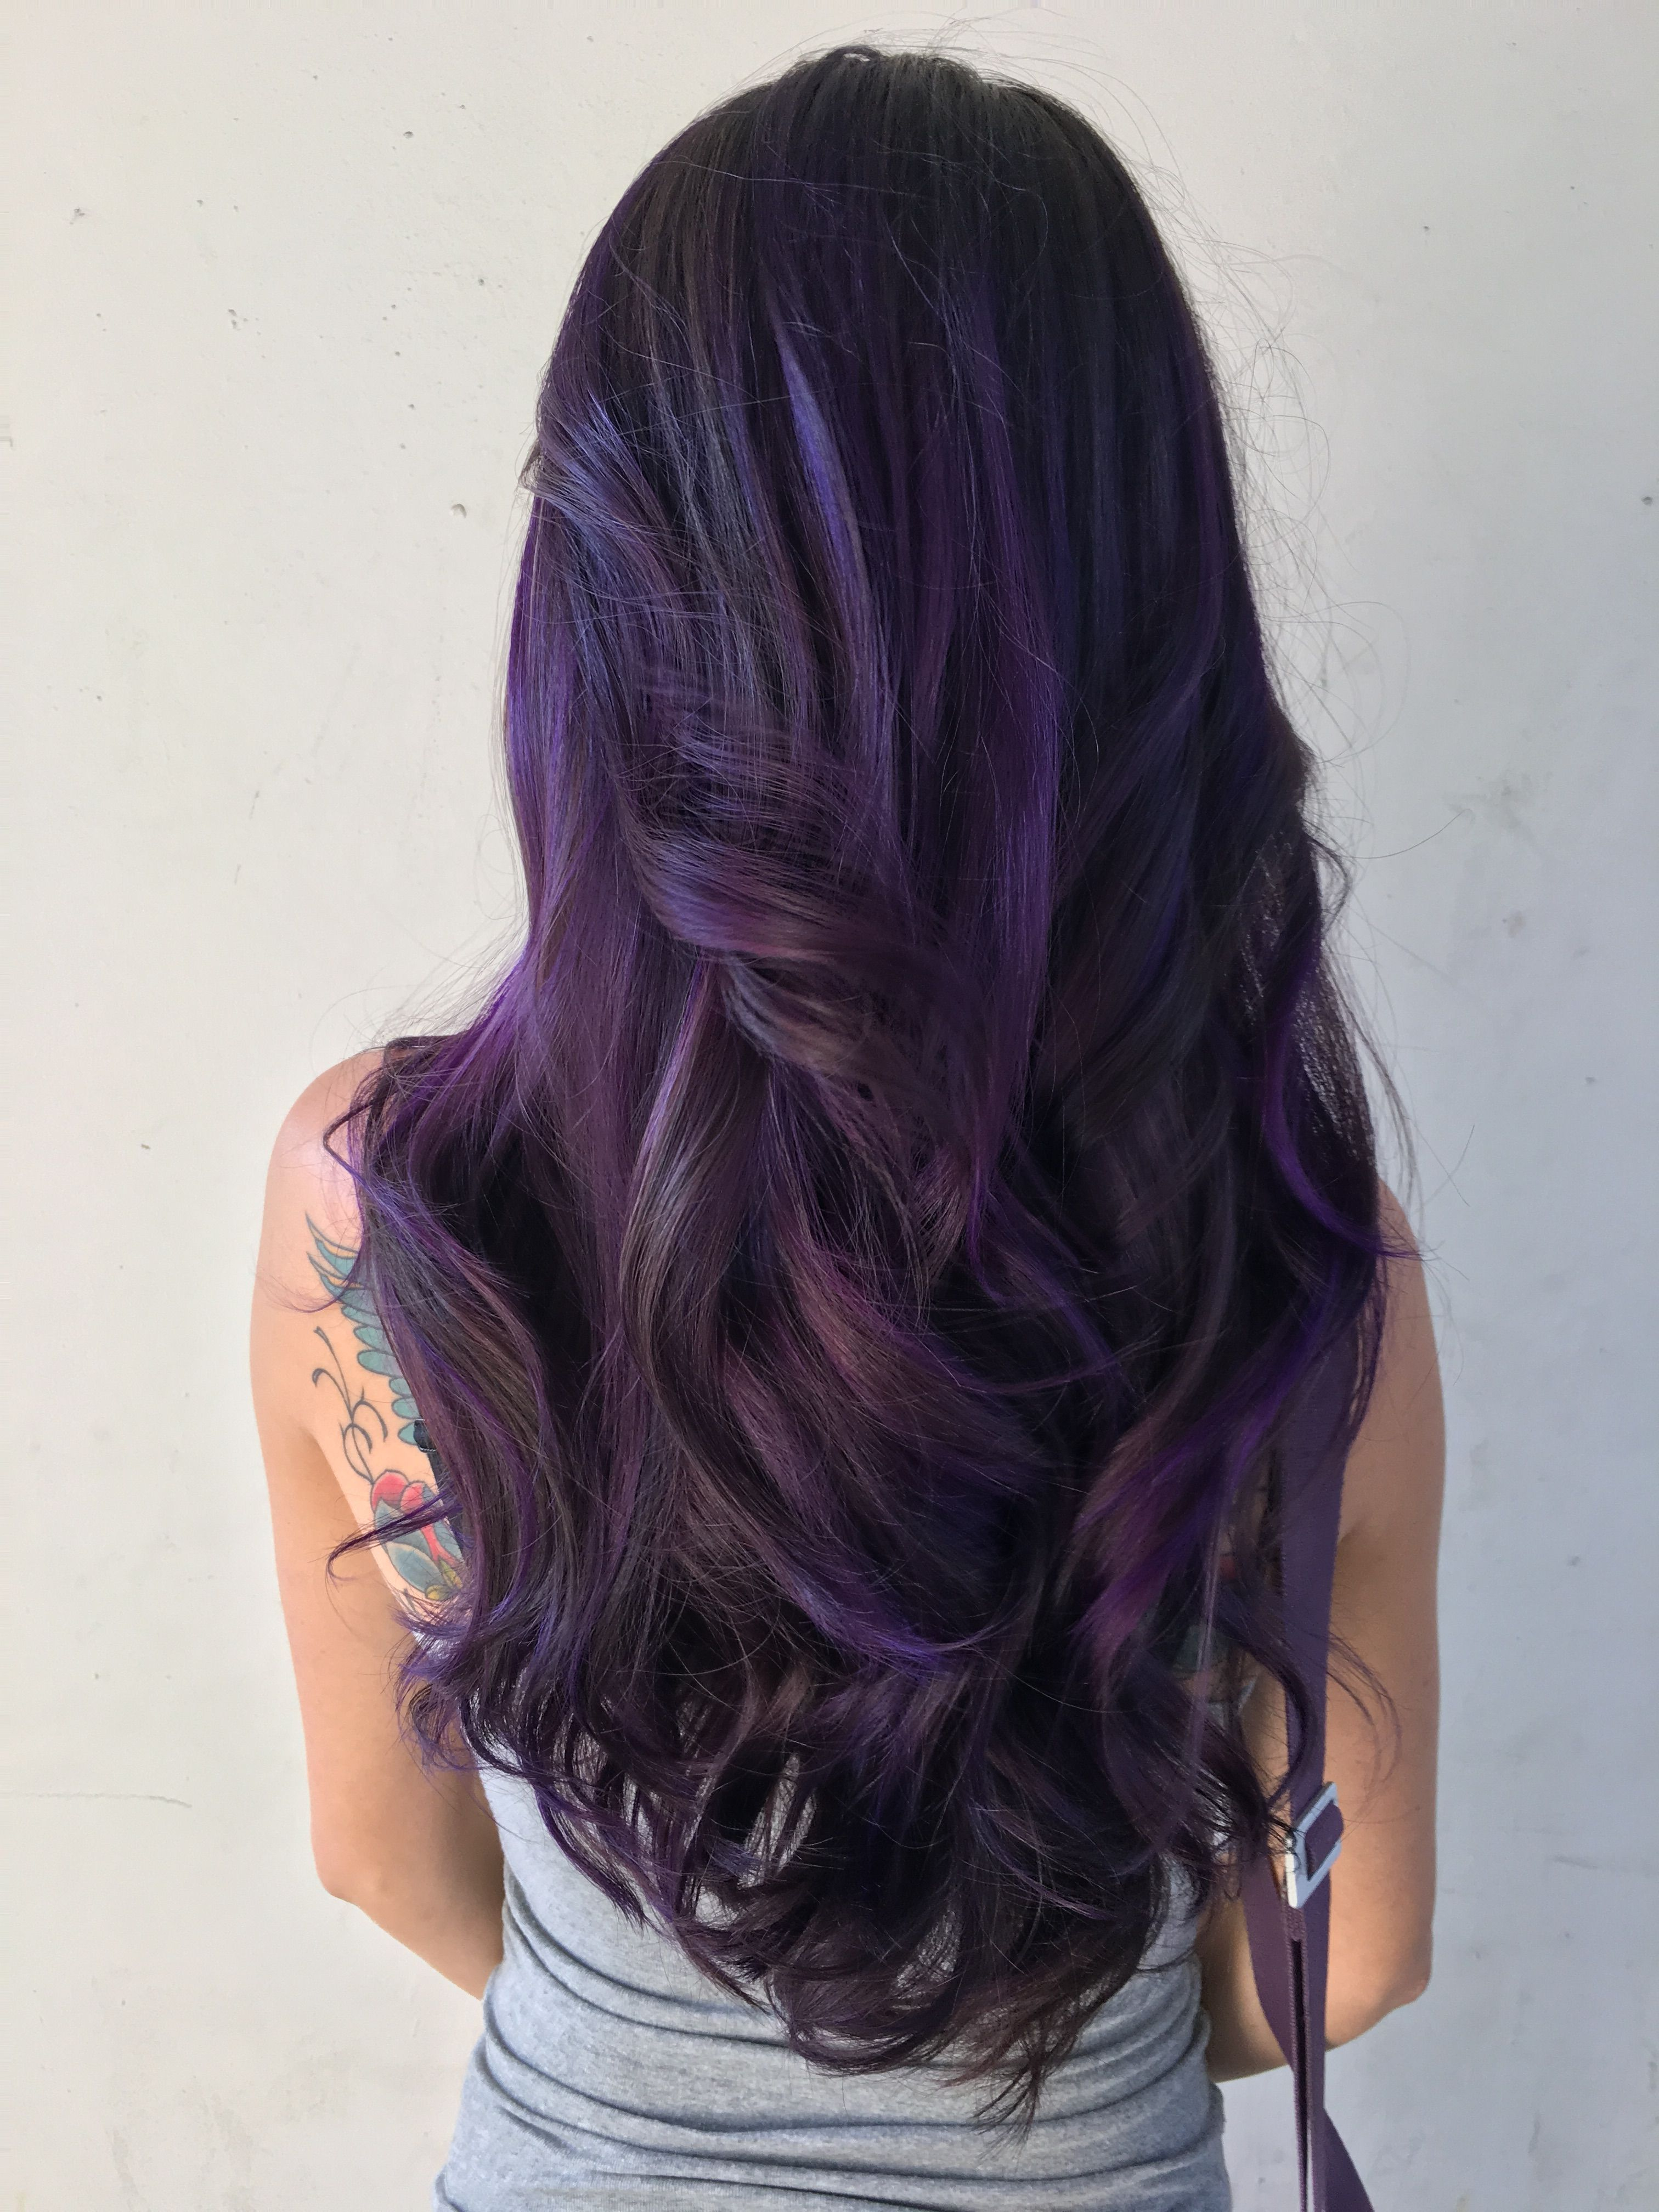 Purple hair, dark violet hair, mermaid hair, unicorn hair, galaxy hair, smoky hair, balayage, hair painting